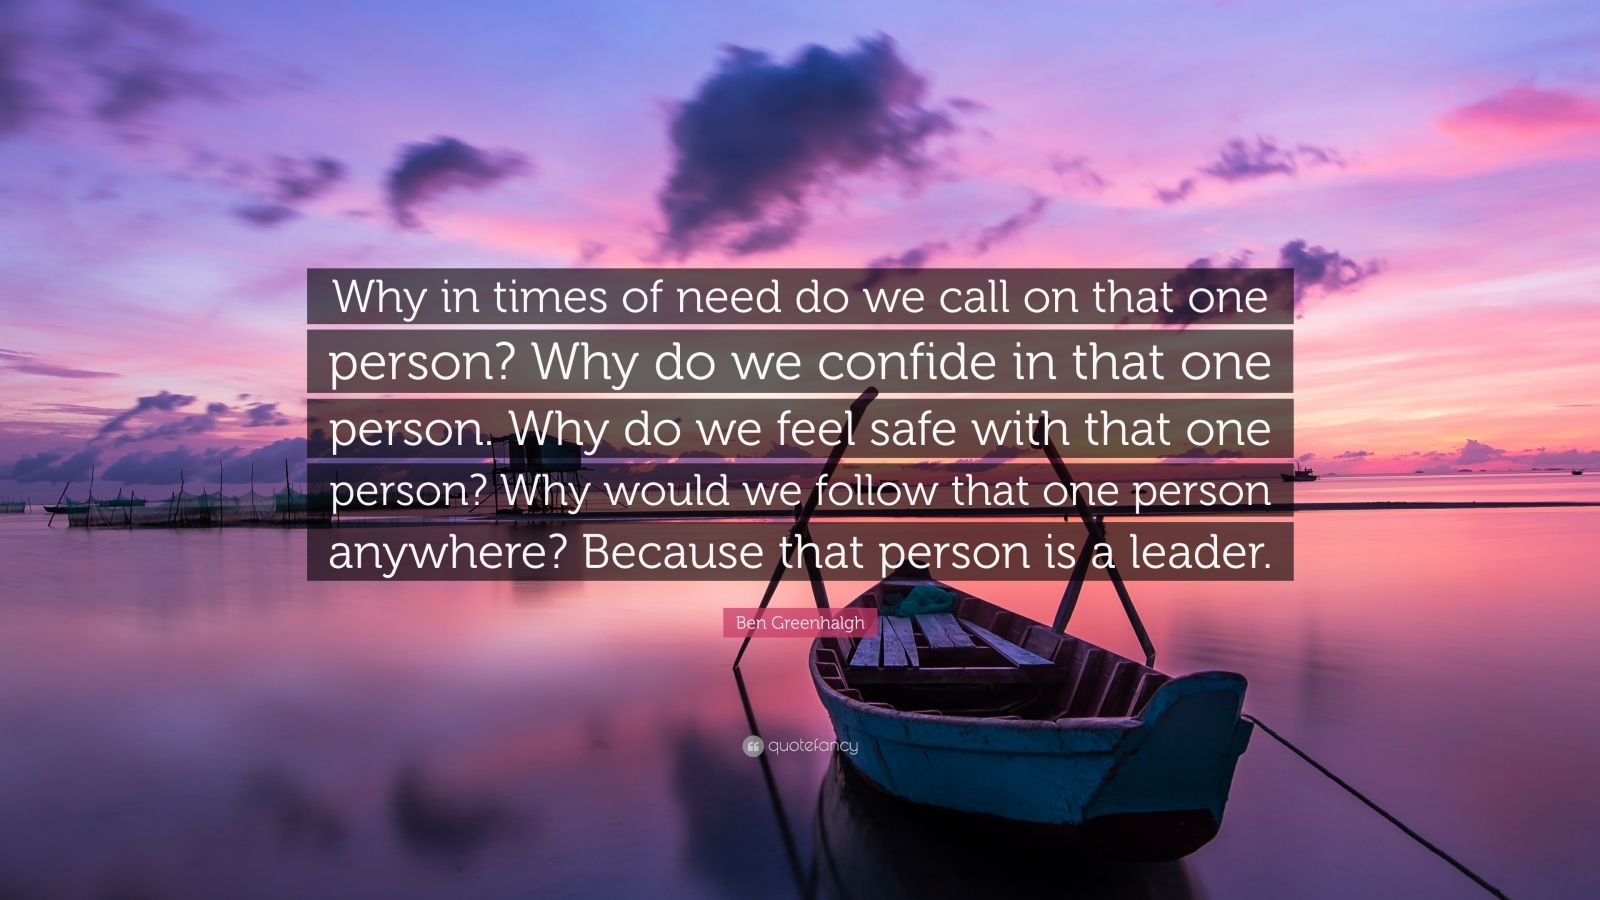 """Ben Greenhalgh Quote: """"Why in times of need do we call on that one person? Why do we confide in that one person. Why do we feel safe with that one person? Why would we follow that one person anywhere? Because that person is a leader."""""""